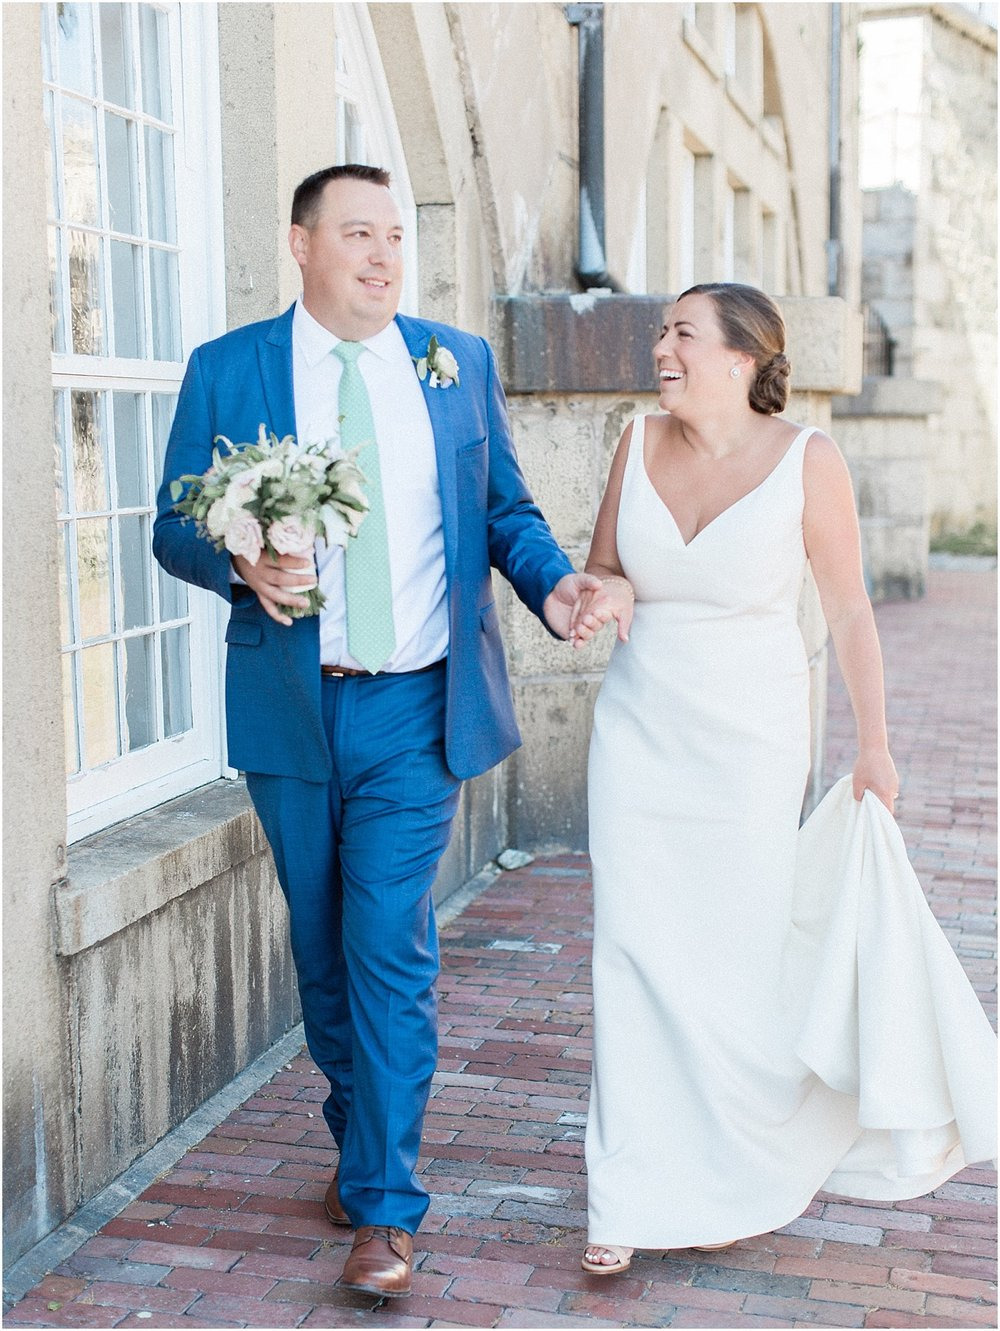 erica_pat_desilva_stevens_fort_adams_tented_rhode_island_newport_st_marys_church_cape_cod_boston_wedding_photographer_meredith_jane_photography_photo_0547.jpg